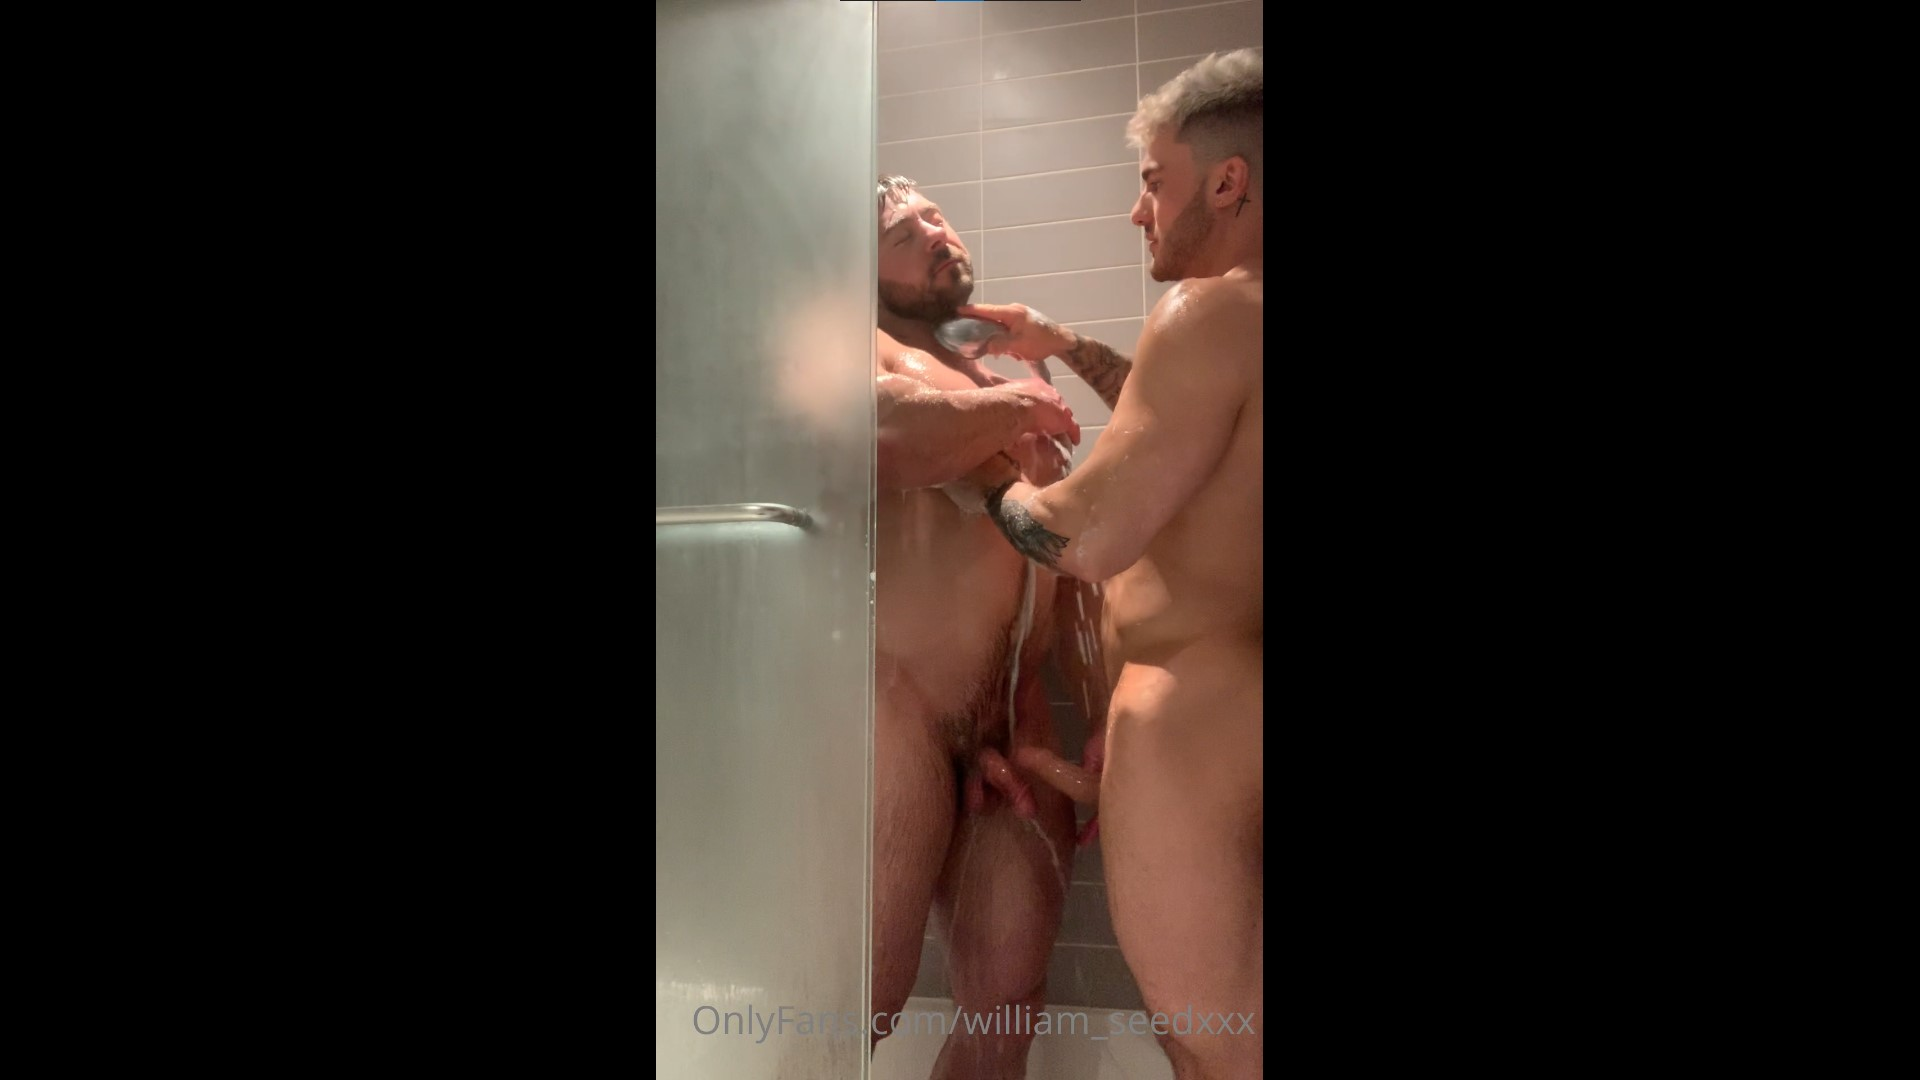 Having a shower with a hot muscles stud - William Seed